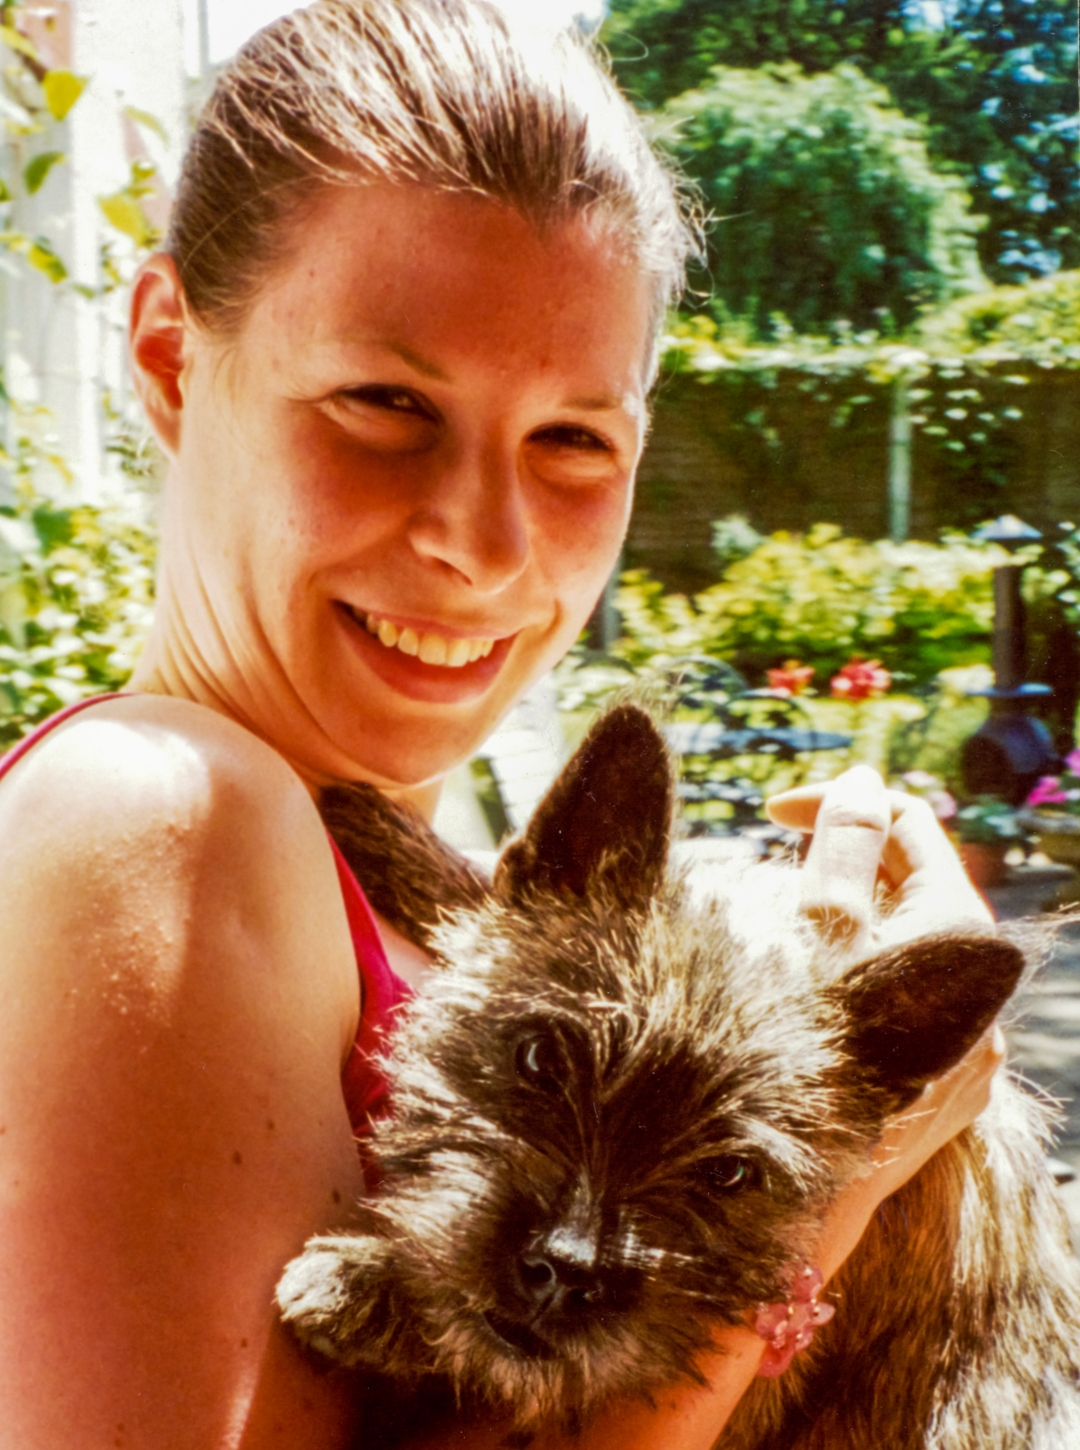 A photograph of a 23-year-old girl holding a terrier puppy in her garden - An Open Letter To My 23-Year-Old Self - Mrs H's favourite things